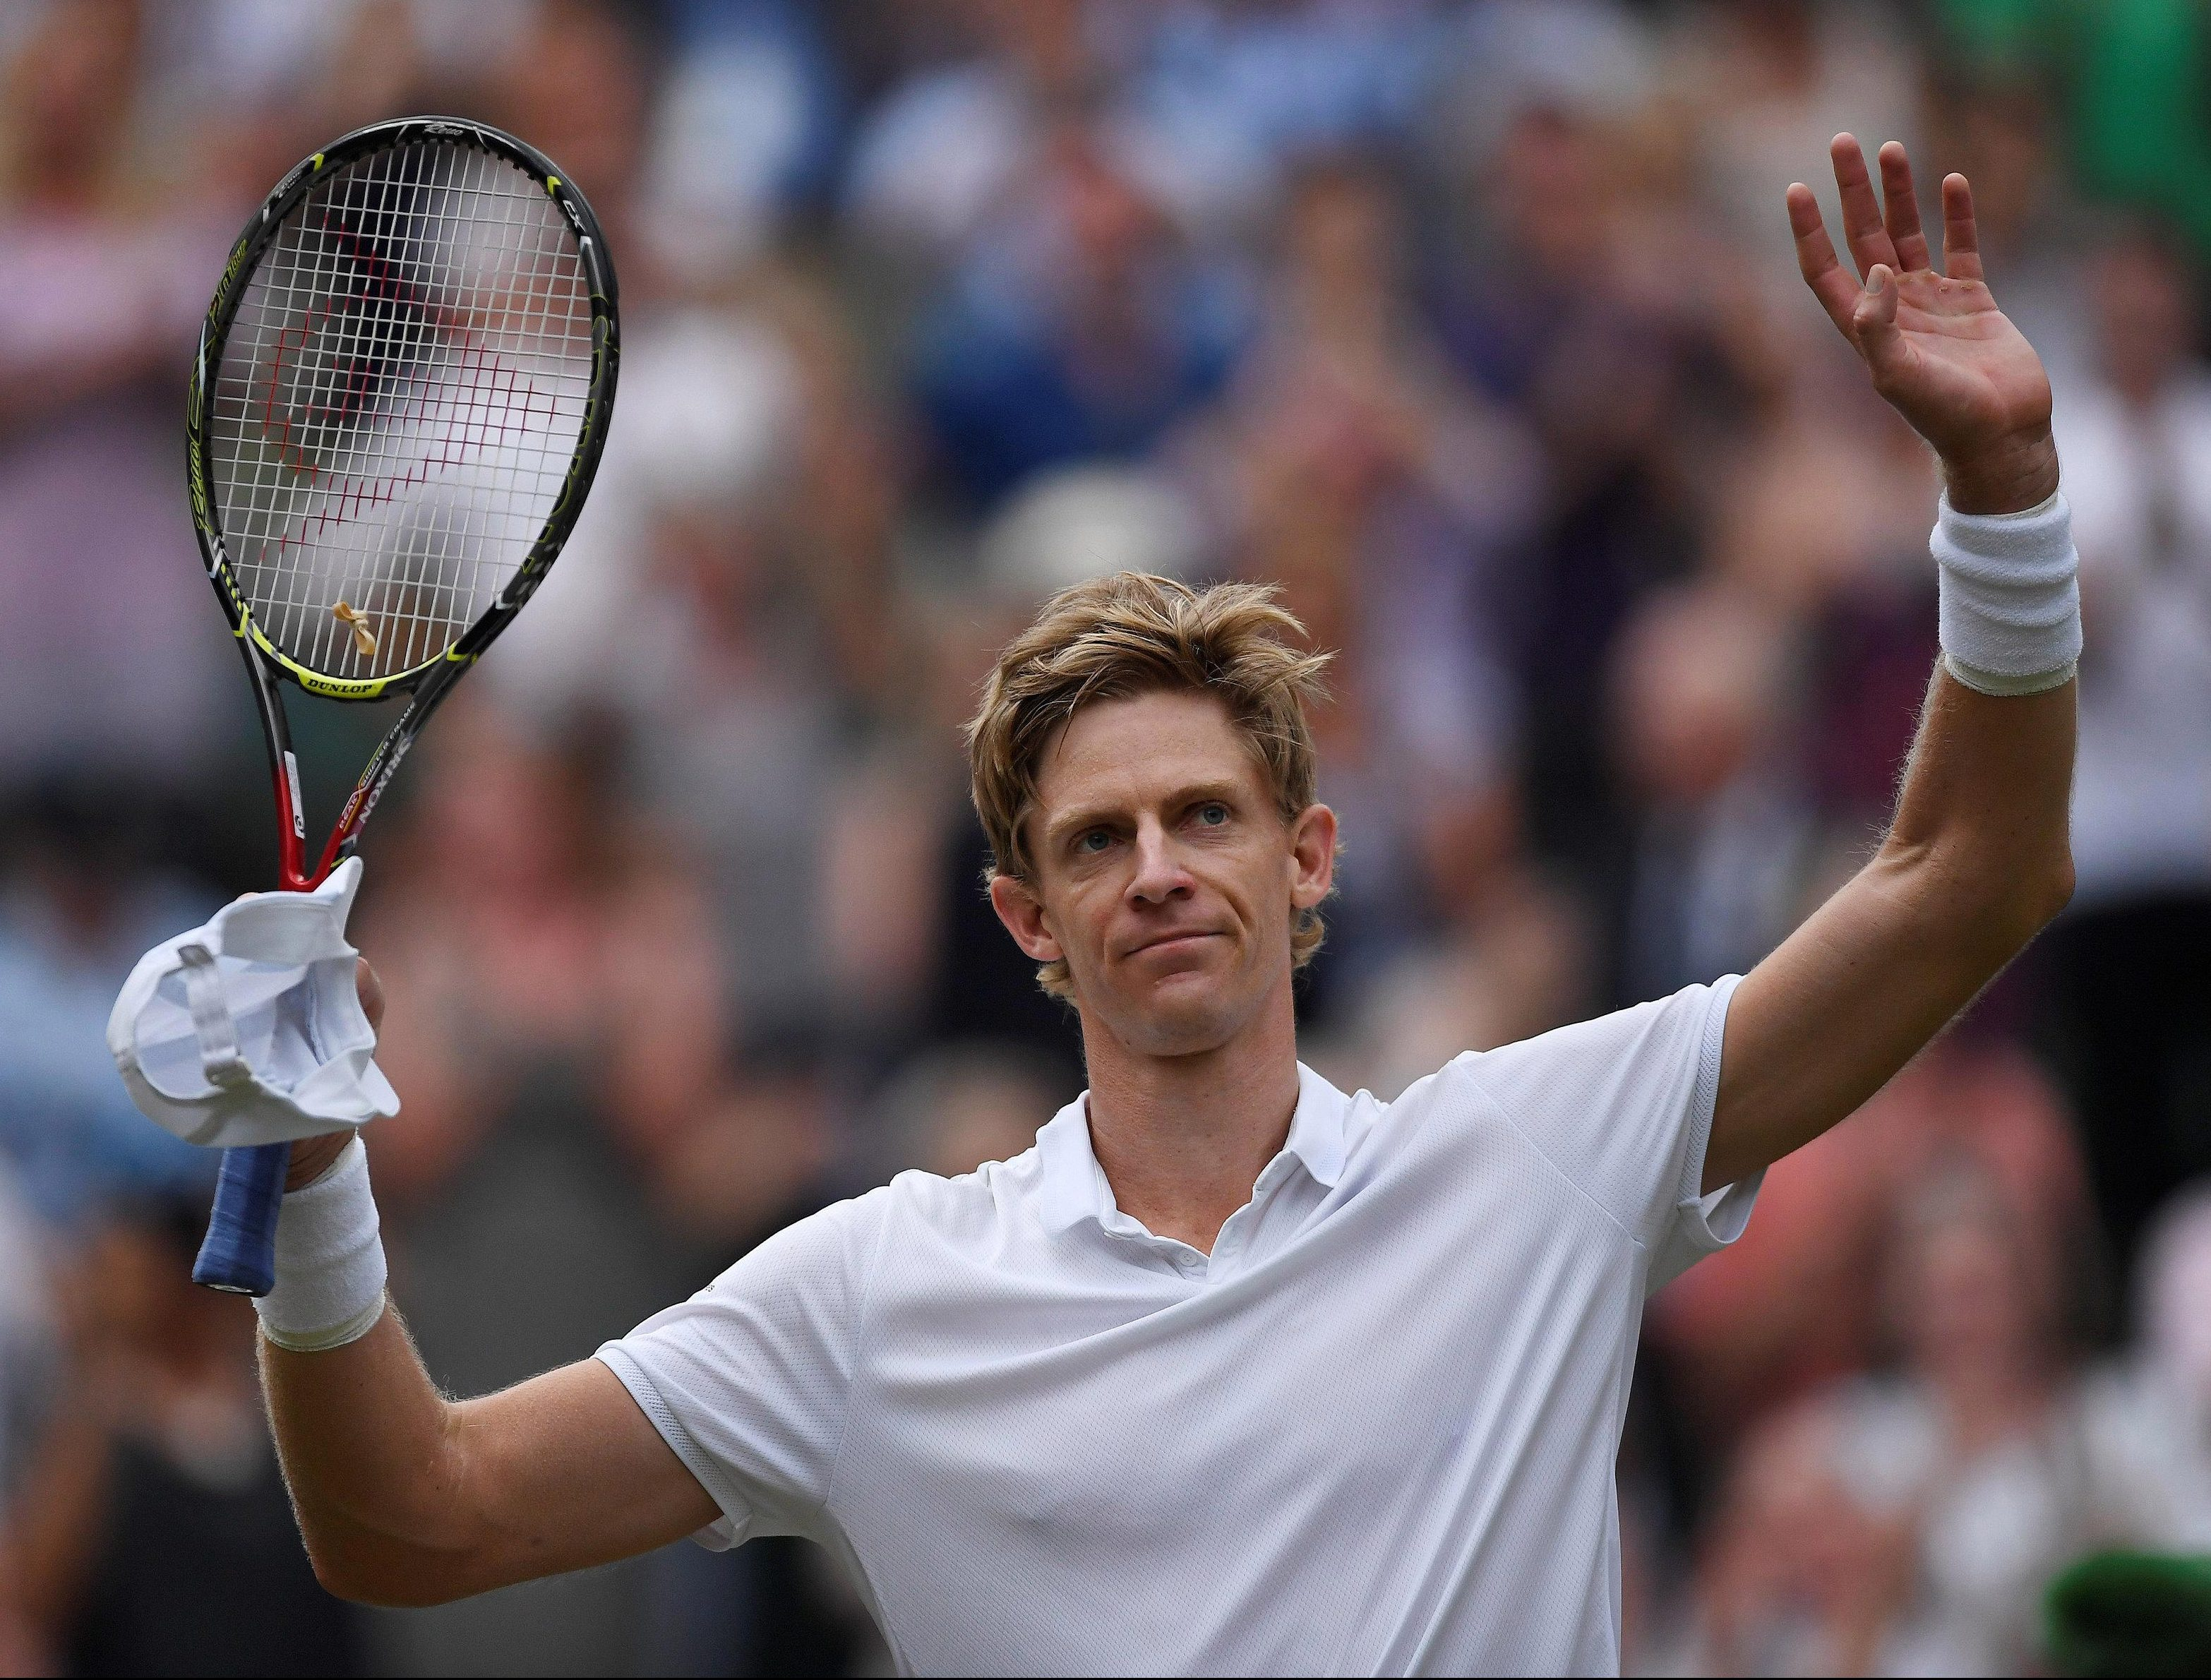 Kevin Anderson shows his relief as much as joy after his victory over John Isner